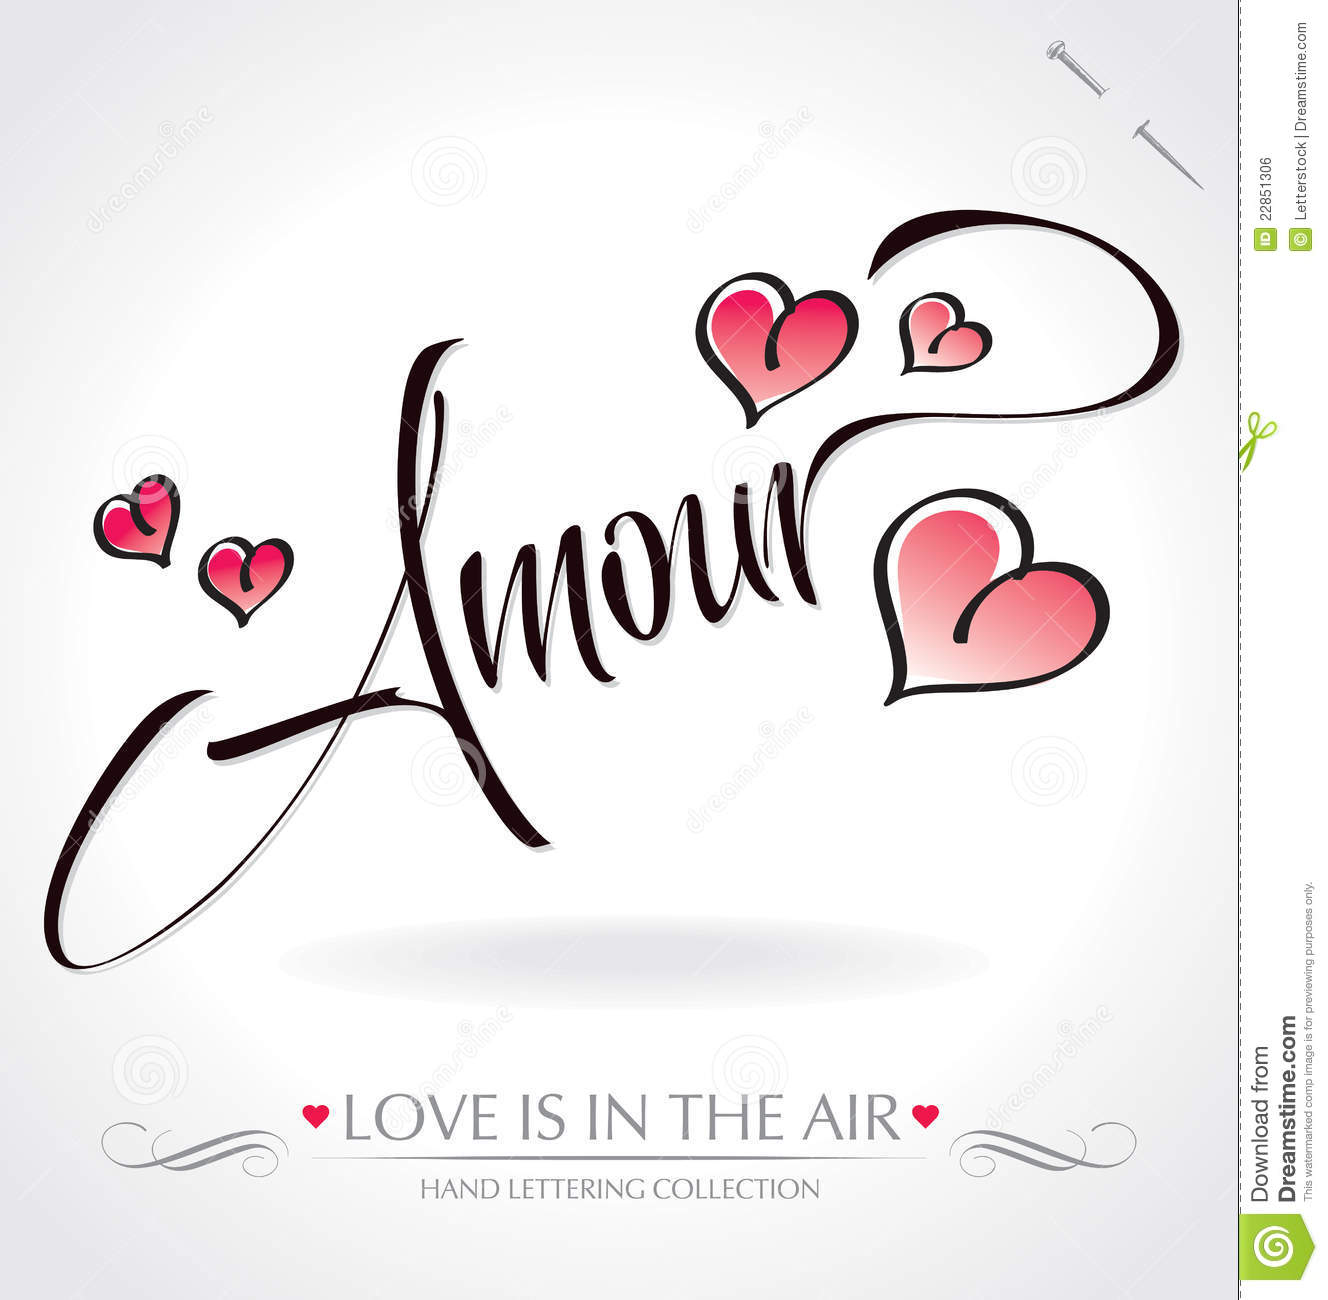 Amour hand lettering vector royalty free stock image - Clipart amour ...